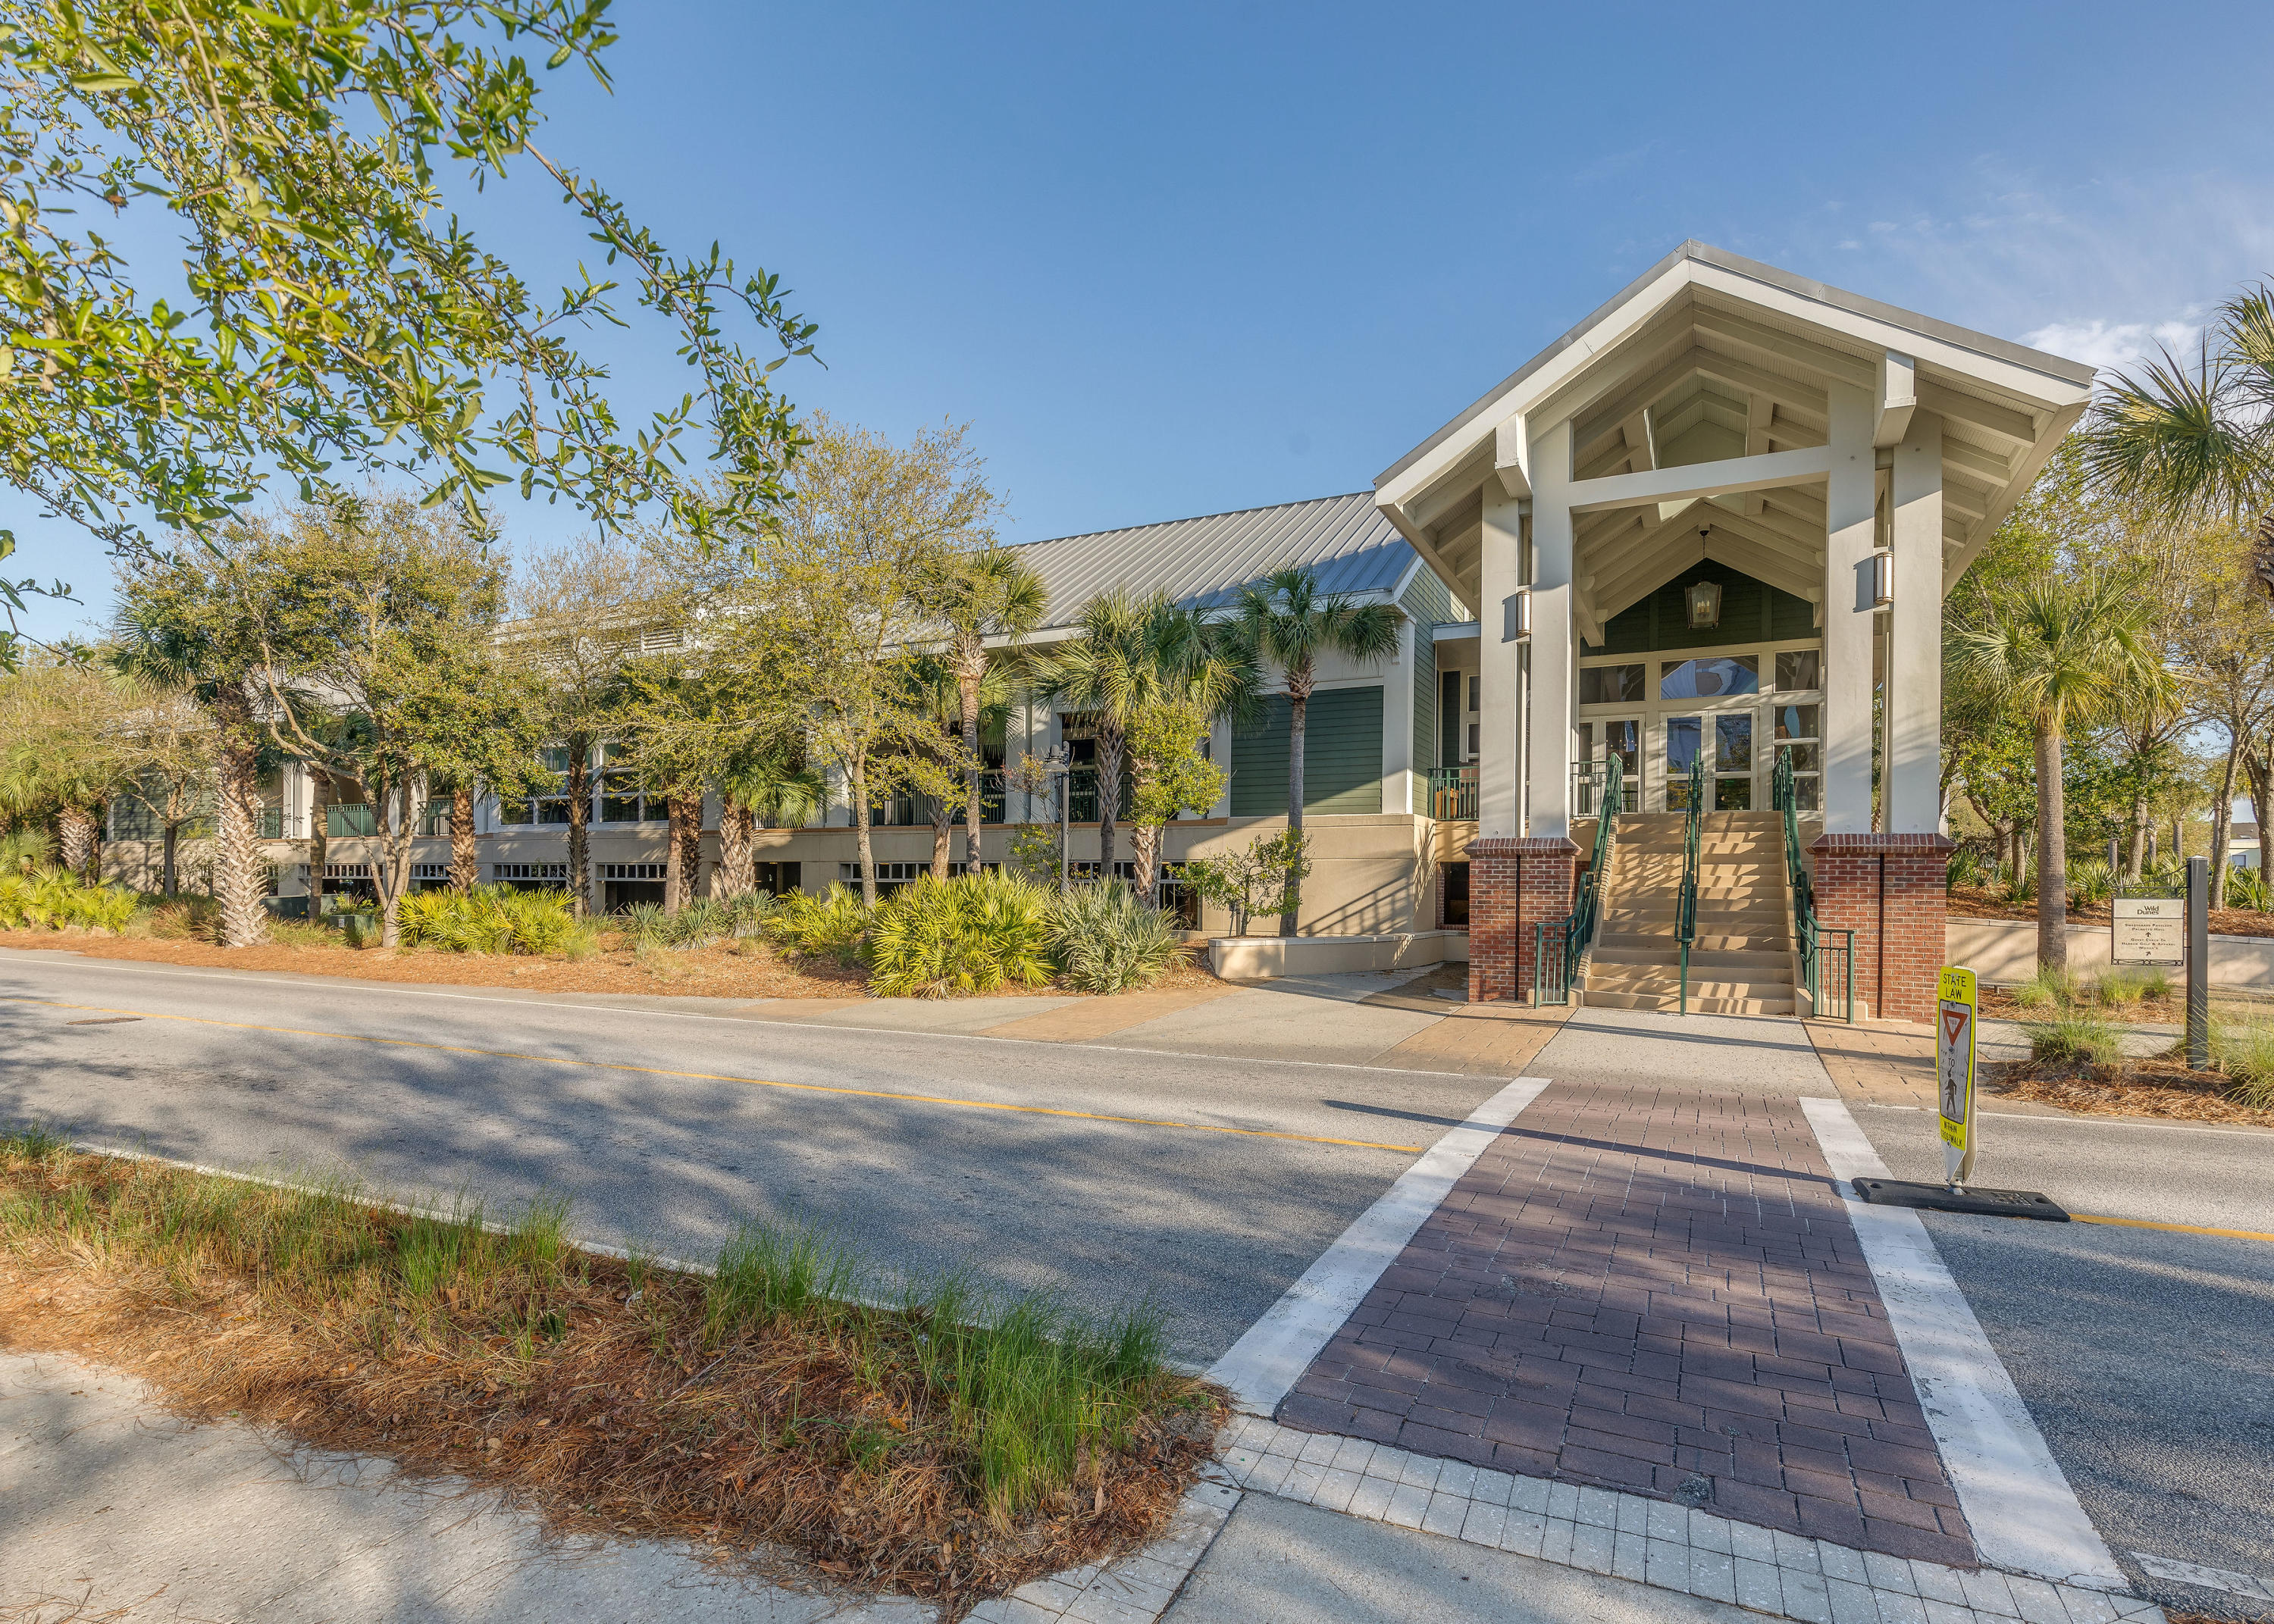 Wild Dunes Homes For Sale - 4104 Ocean Club, Isle of Palms, SC - 27